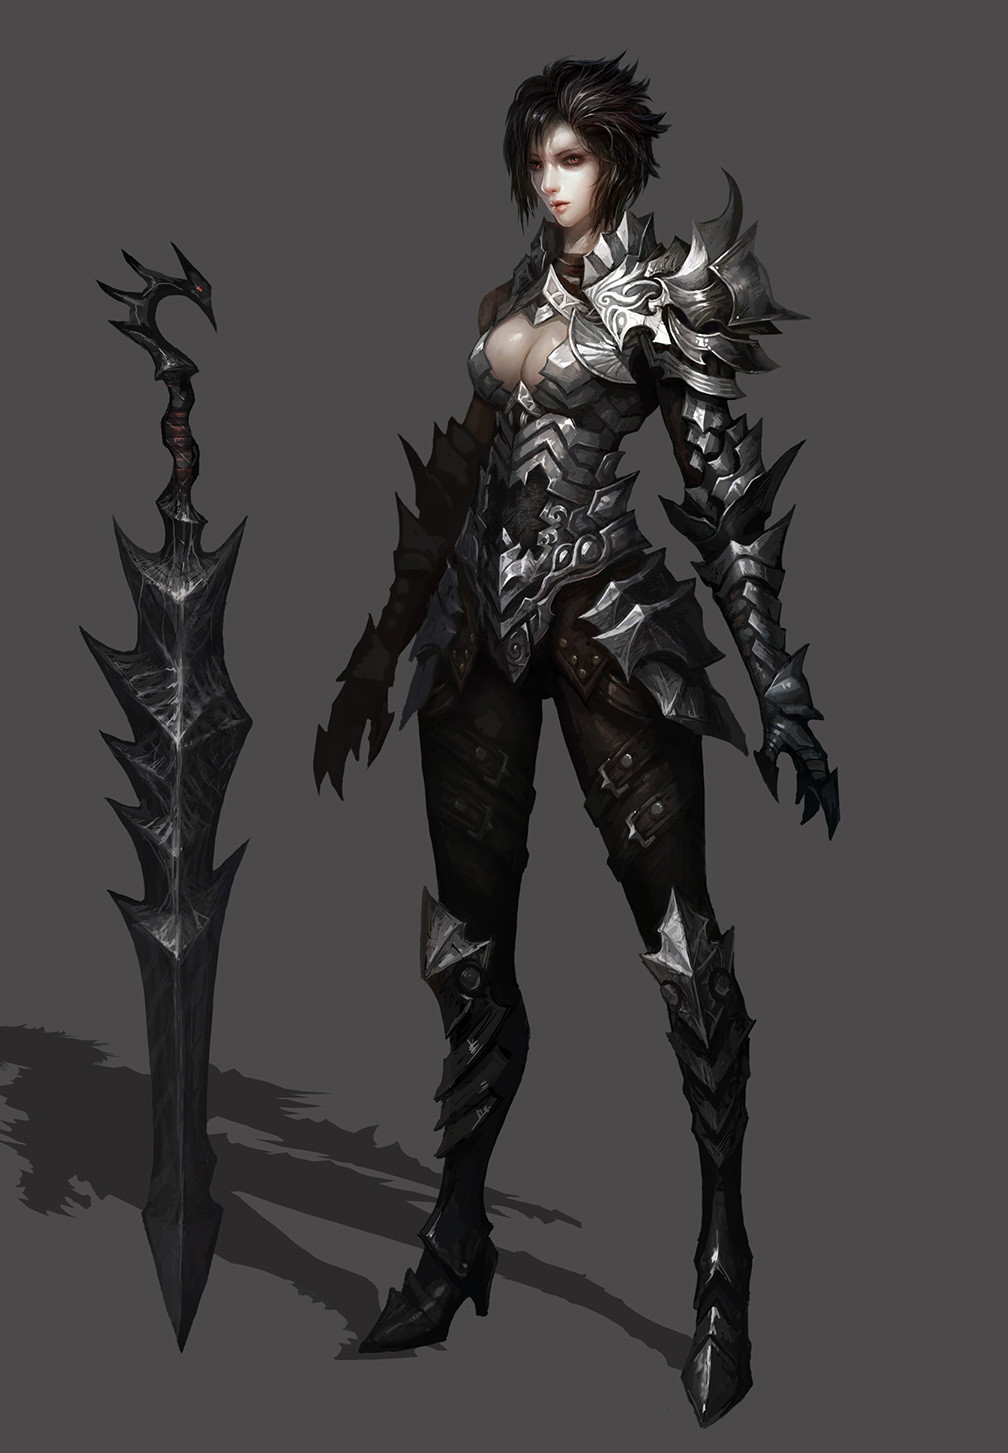 Rexxar remar dragon slayer woman